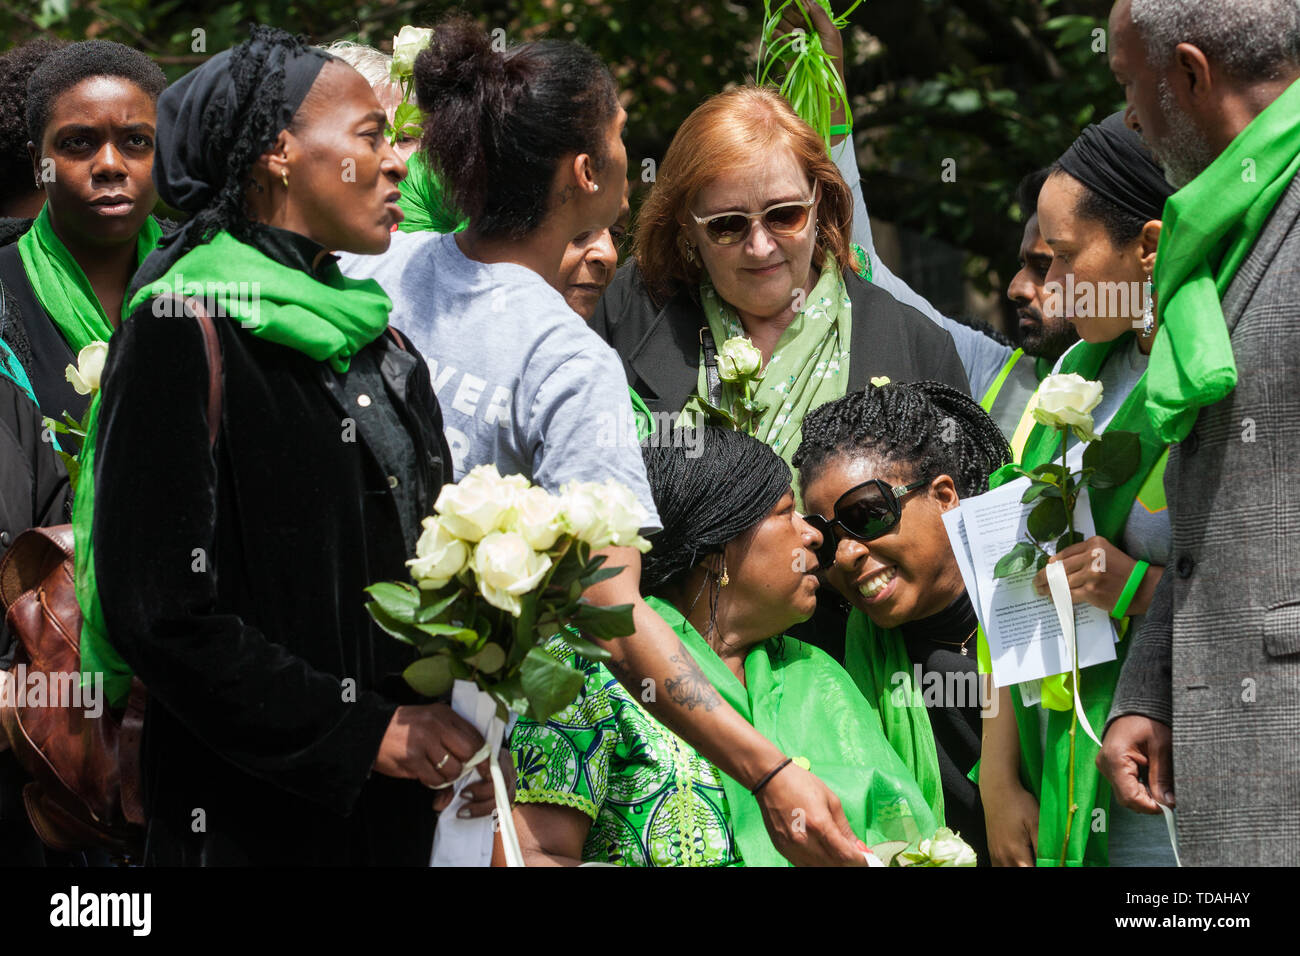 London, UK. 14 June, 2019. Emma Dent Coad, Labour MP for Kensington, joins family members to release doves of peace following a memorial service at St Helen's Church to mark the second anniversary of the Grenfell Tower fire on 14th June 2017 in which at least 72 people died and over 70 were injured. Credit: Mark Kerrison/Alamy Live News - Stock Image